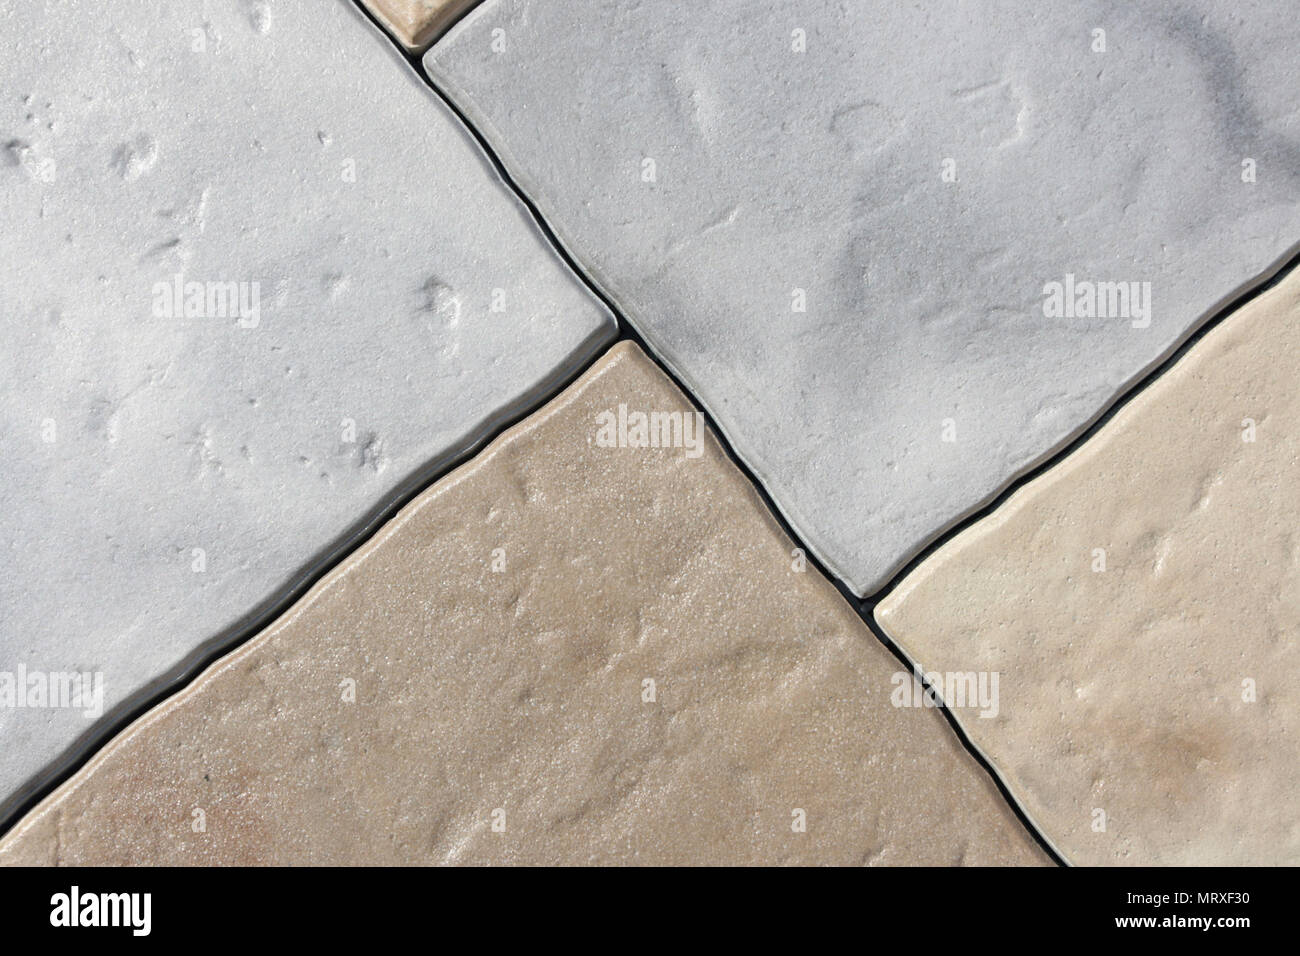 Vintage tiles light gray and light brown with uneven edges stock